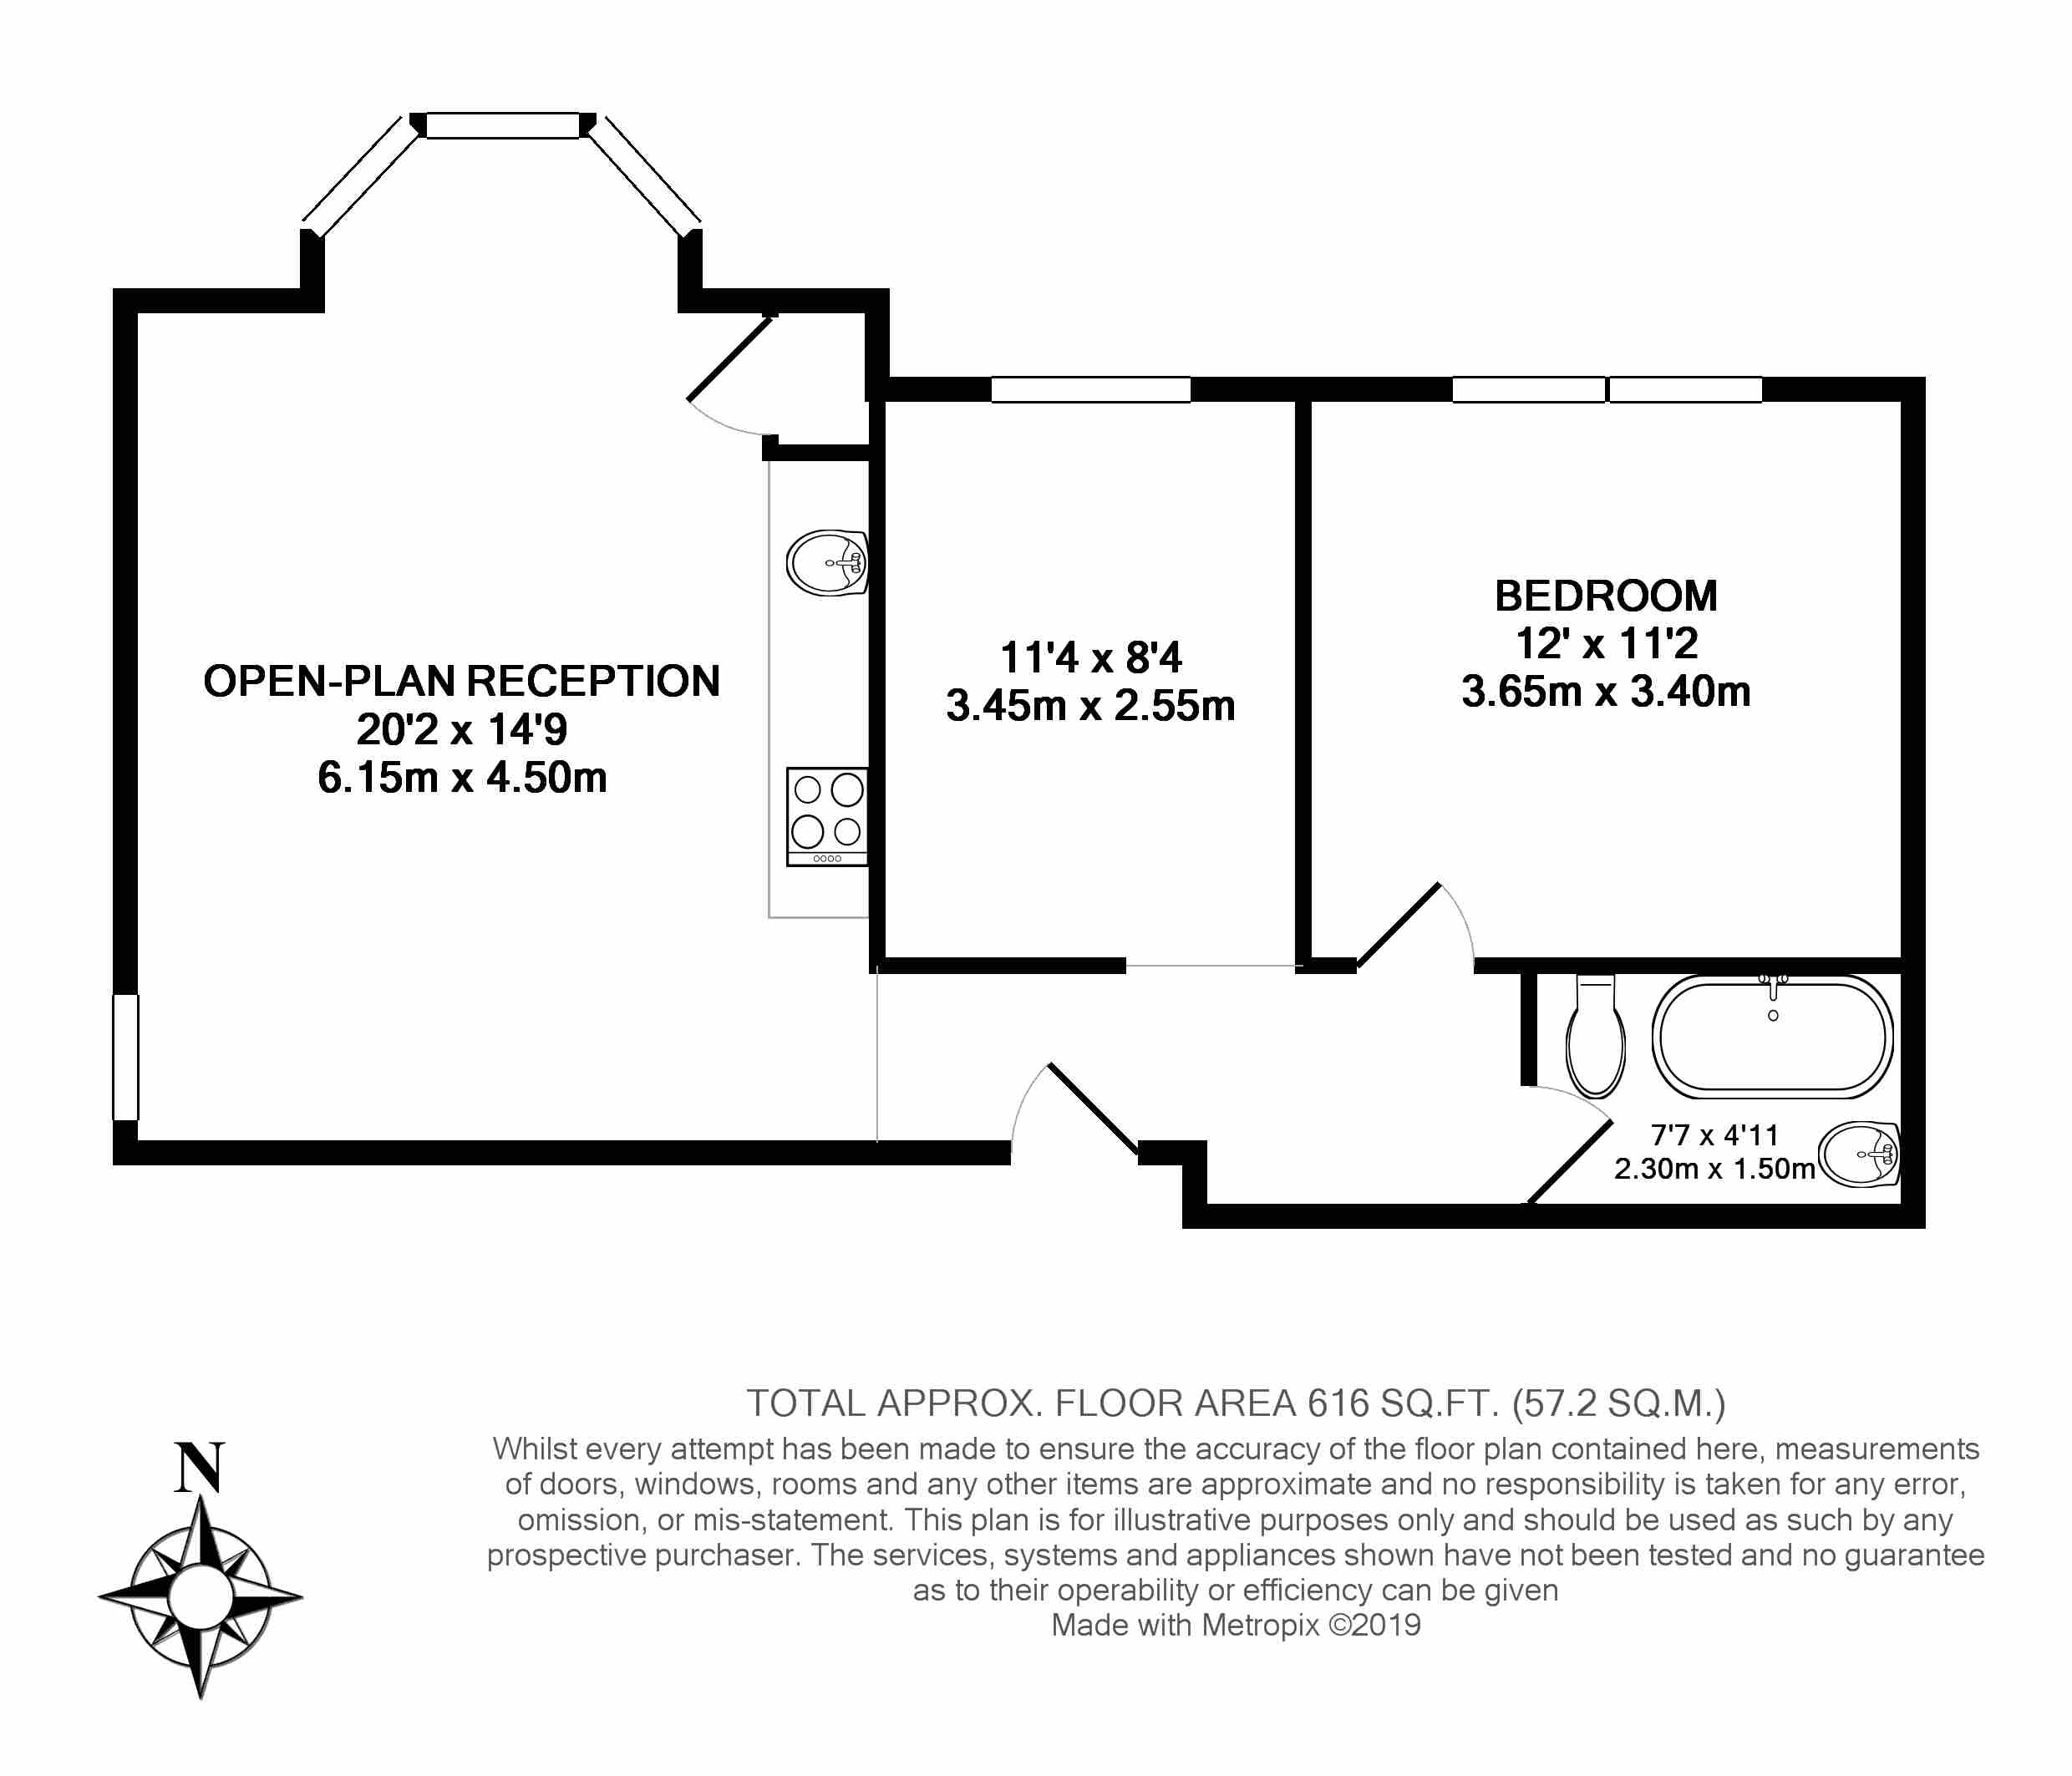 Floorplans For 'Number One Ealing', Montpelier Rd, W5'